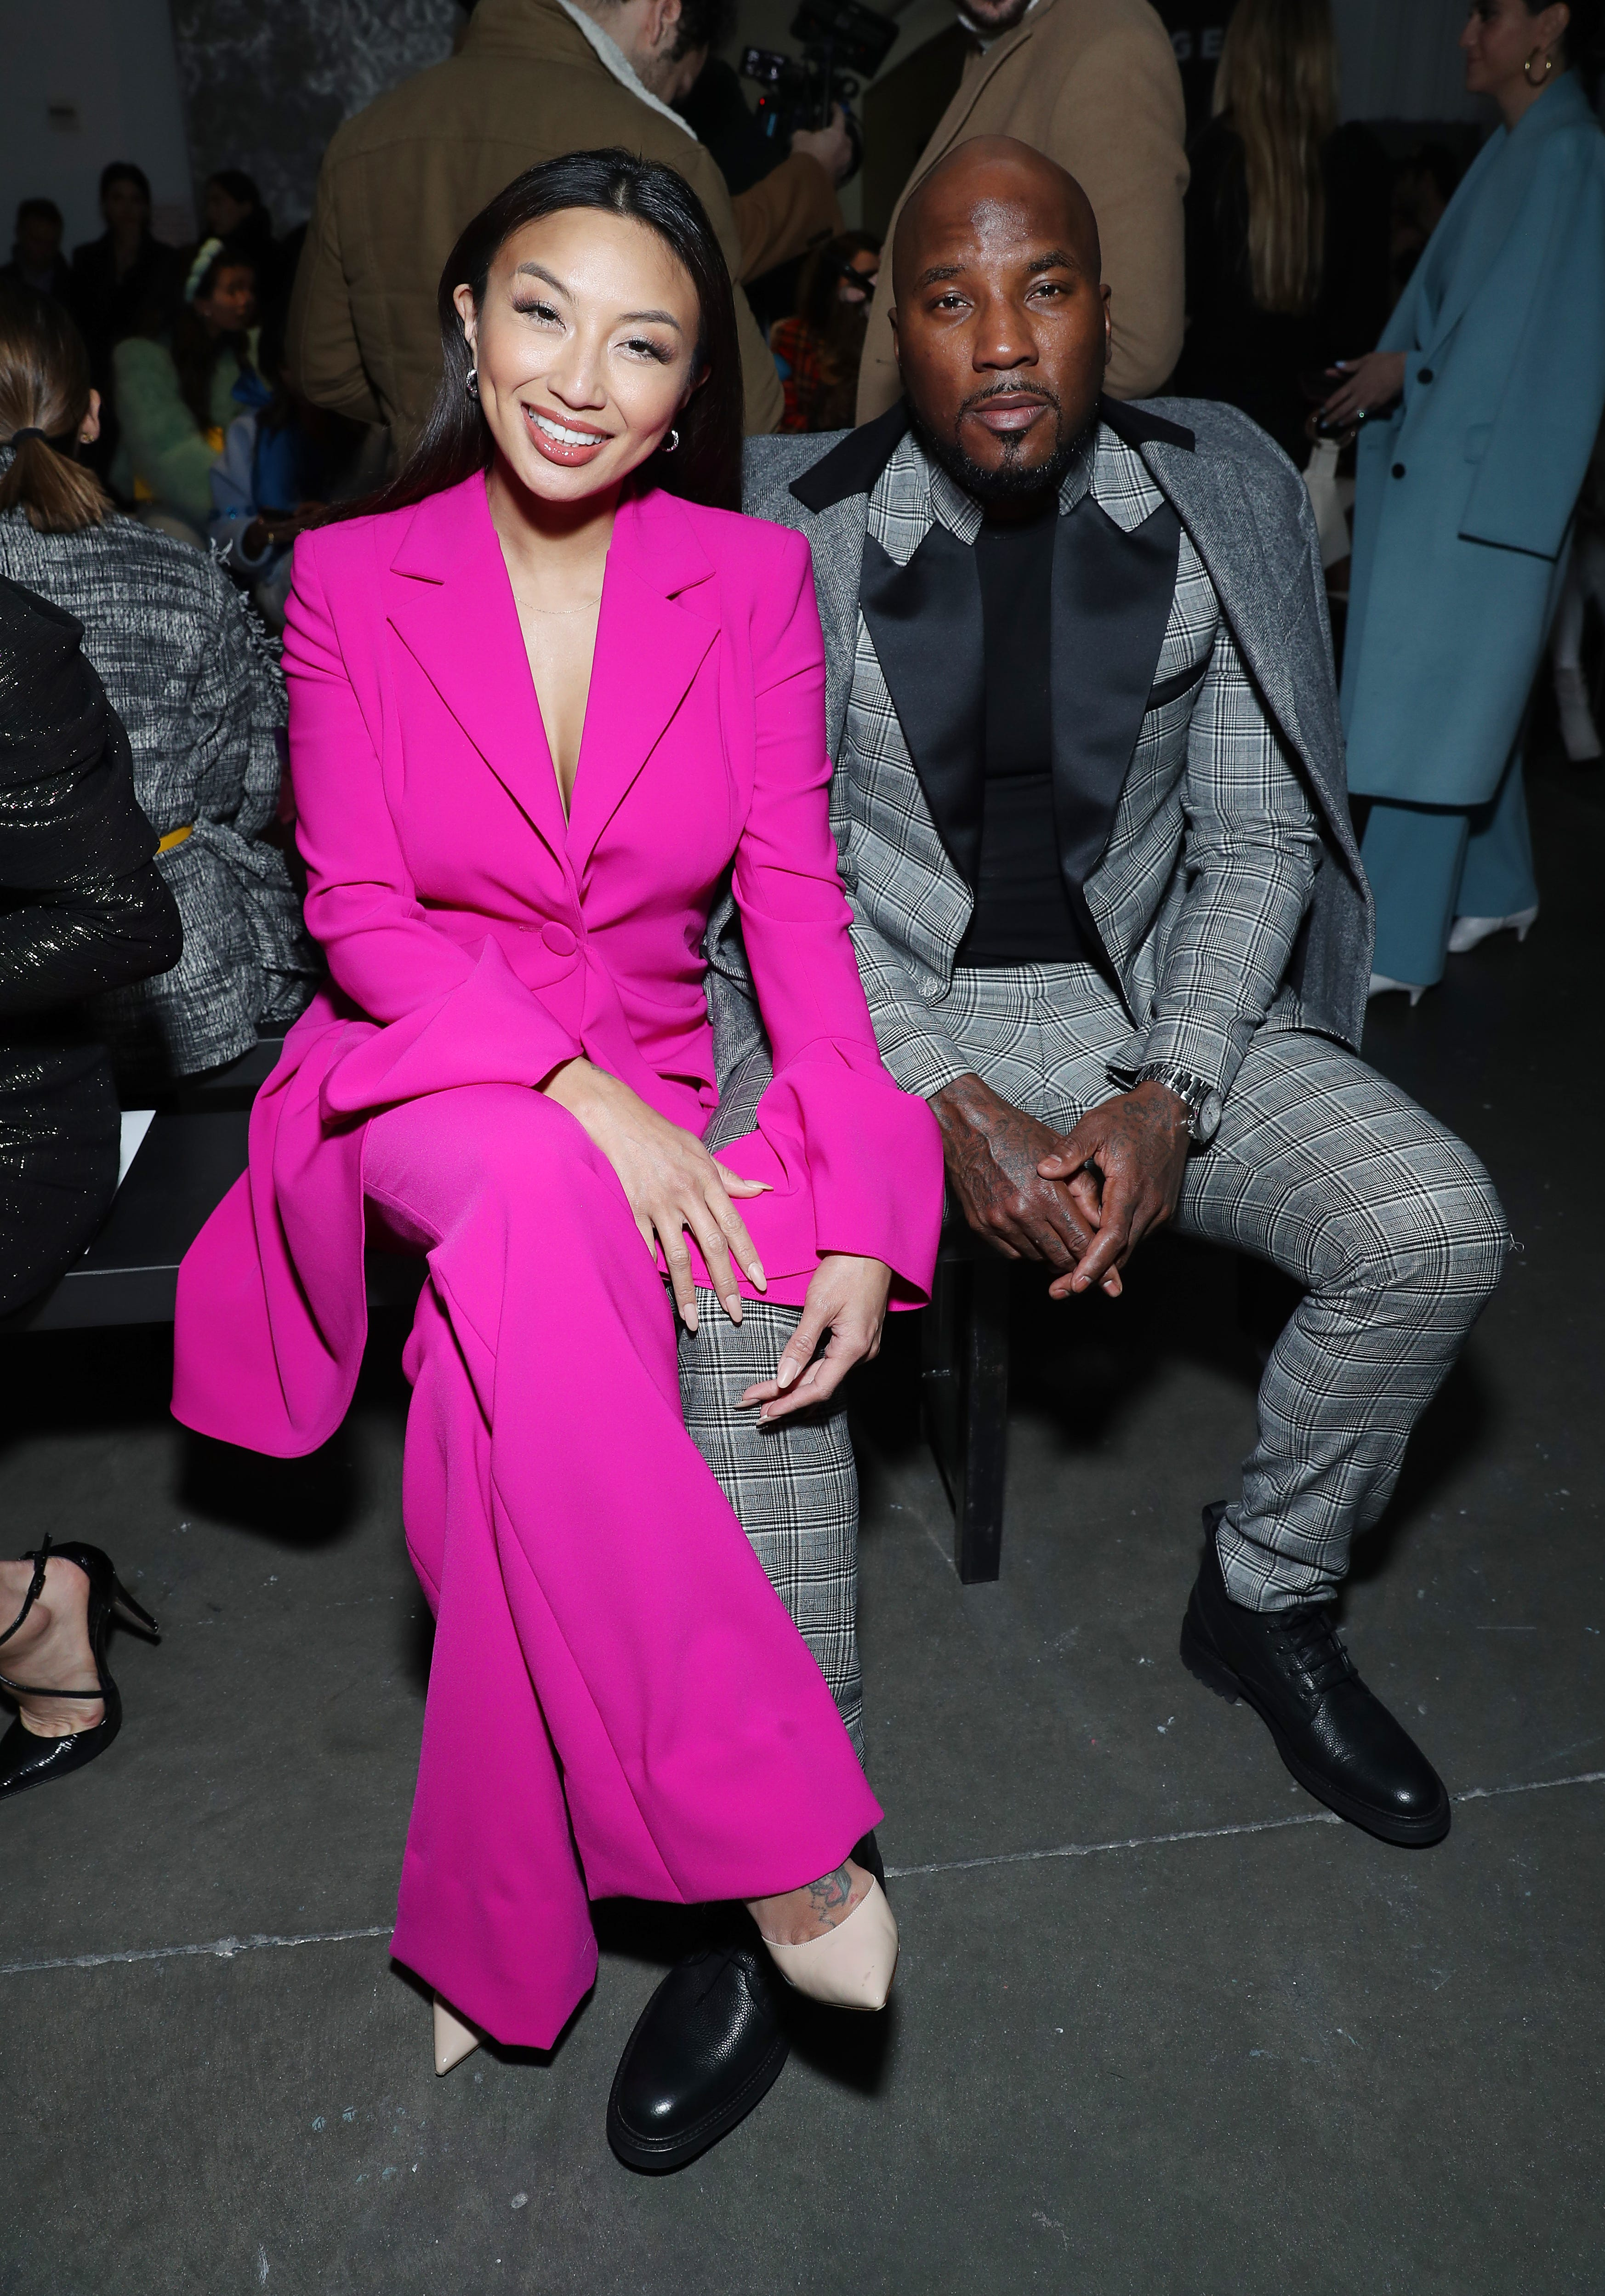 Life is too short : Jeannie Mai and rapper Jeezy quietly marry in Atlanta  mini-mony